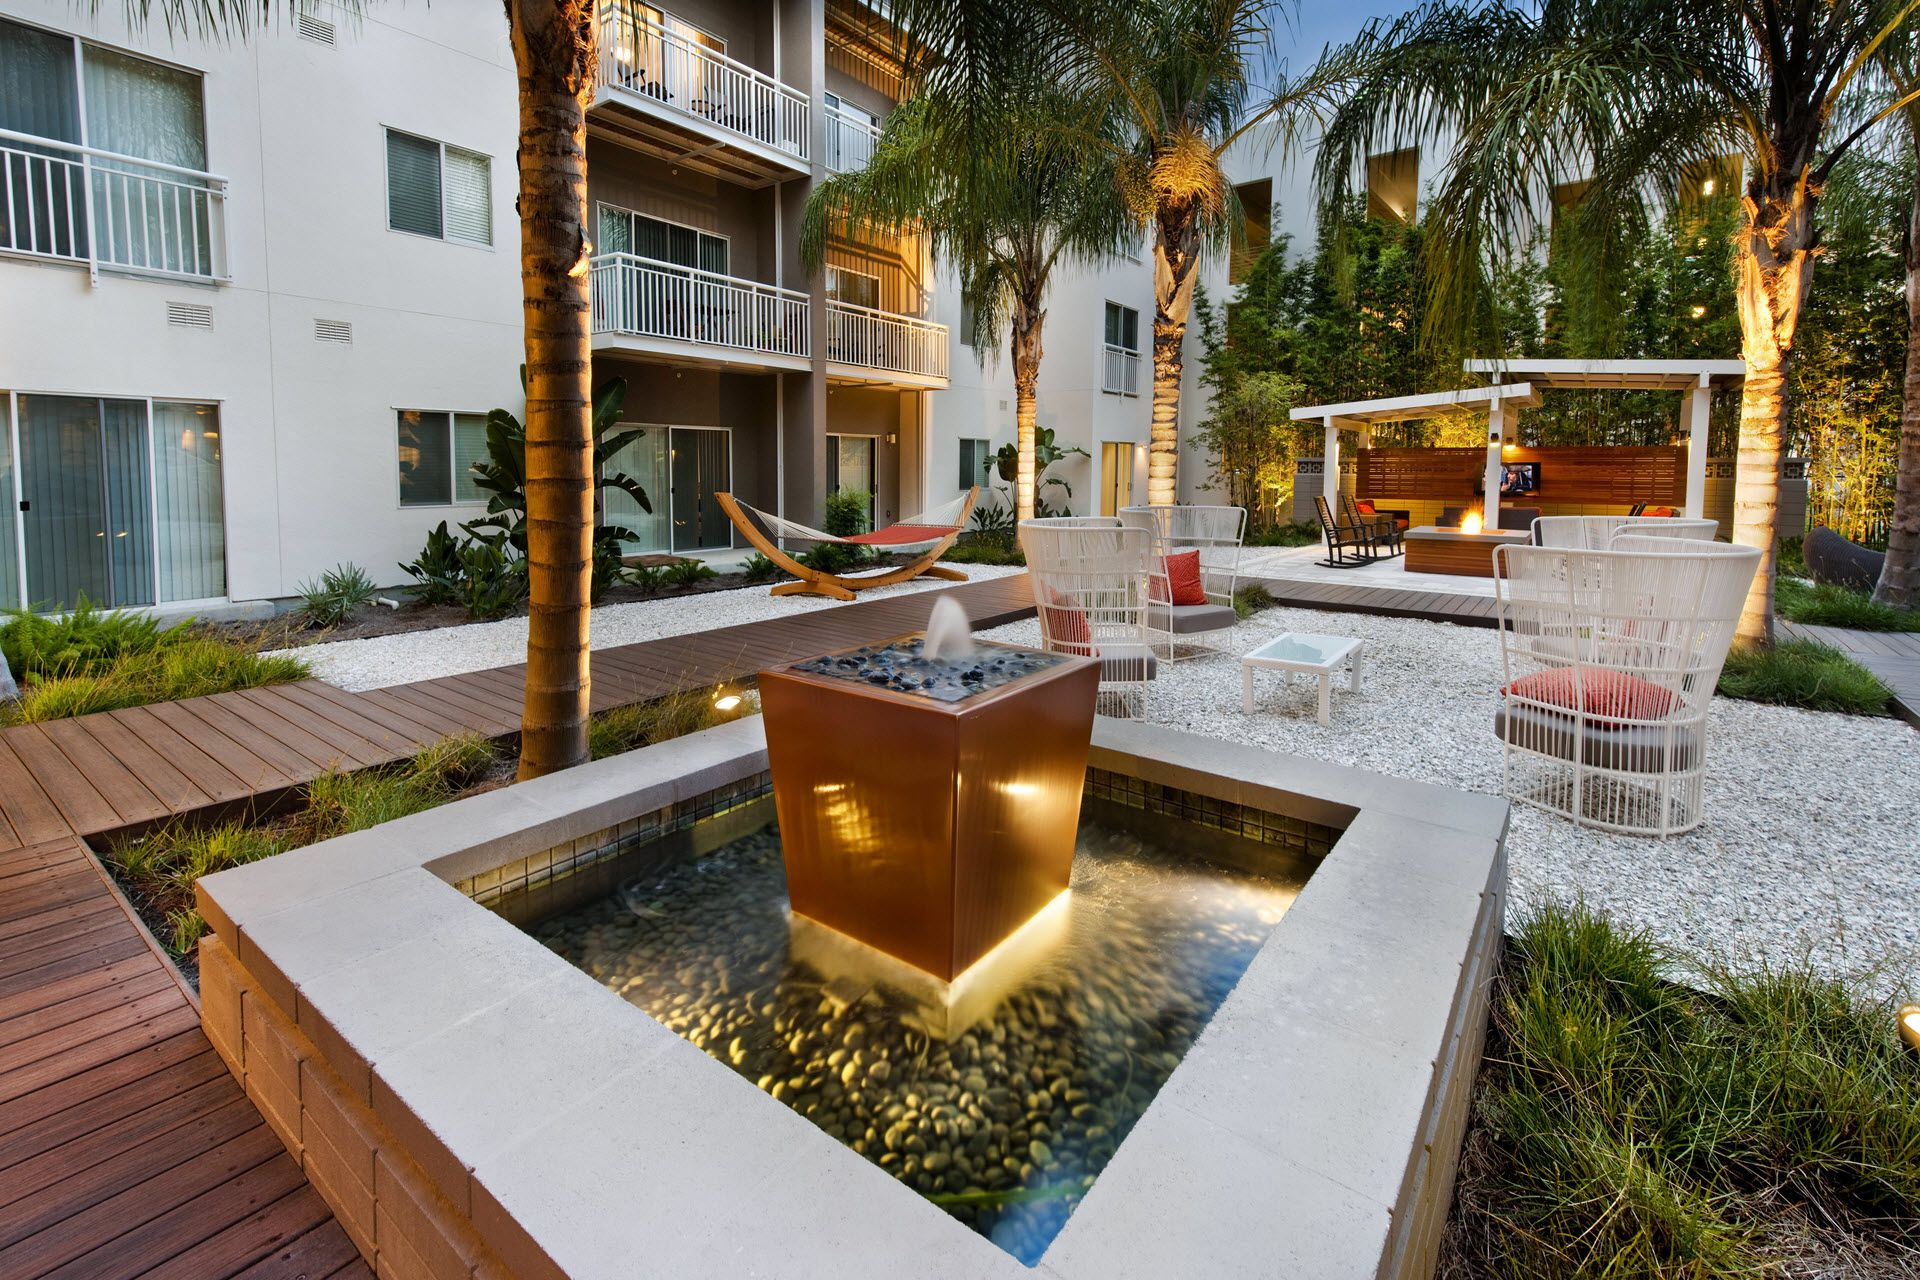 Outdoor seating area with fountain